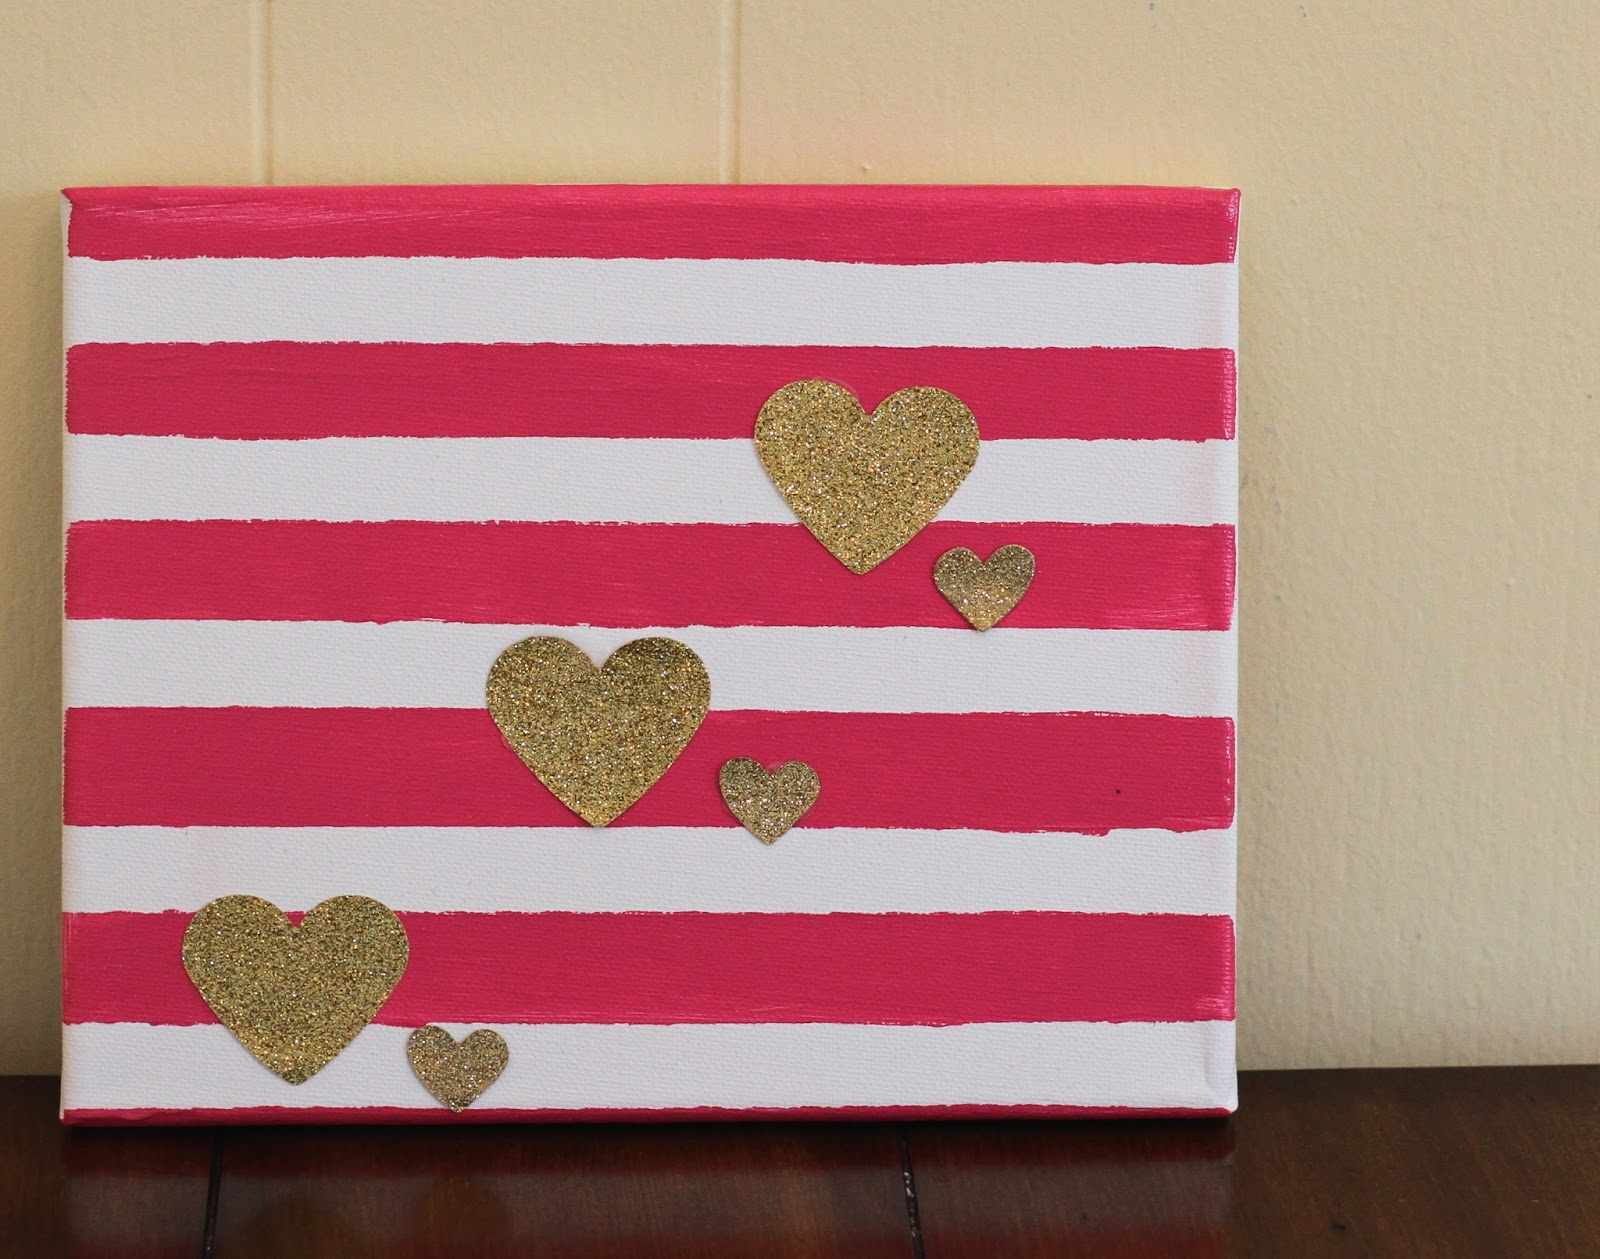 easy diy valentines day decor 2 ideas for a valentine canvas the chirping moms - Valentines Day Decor